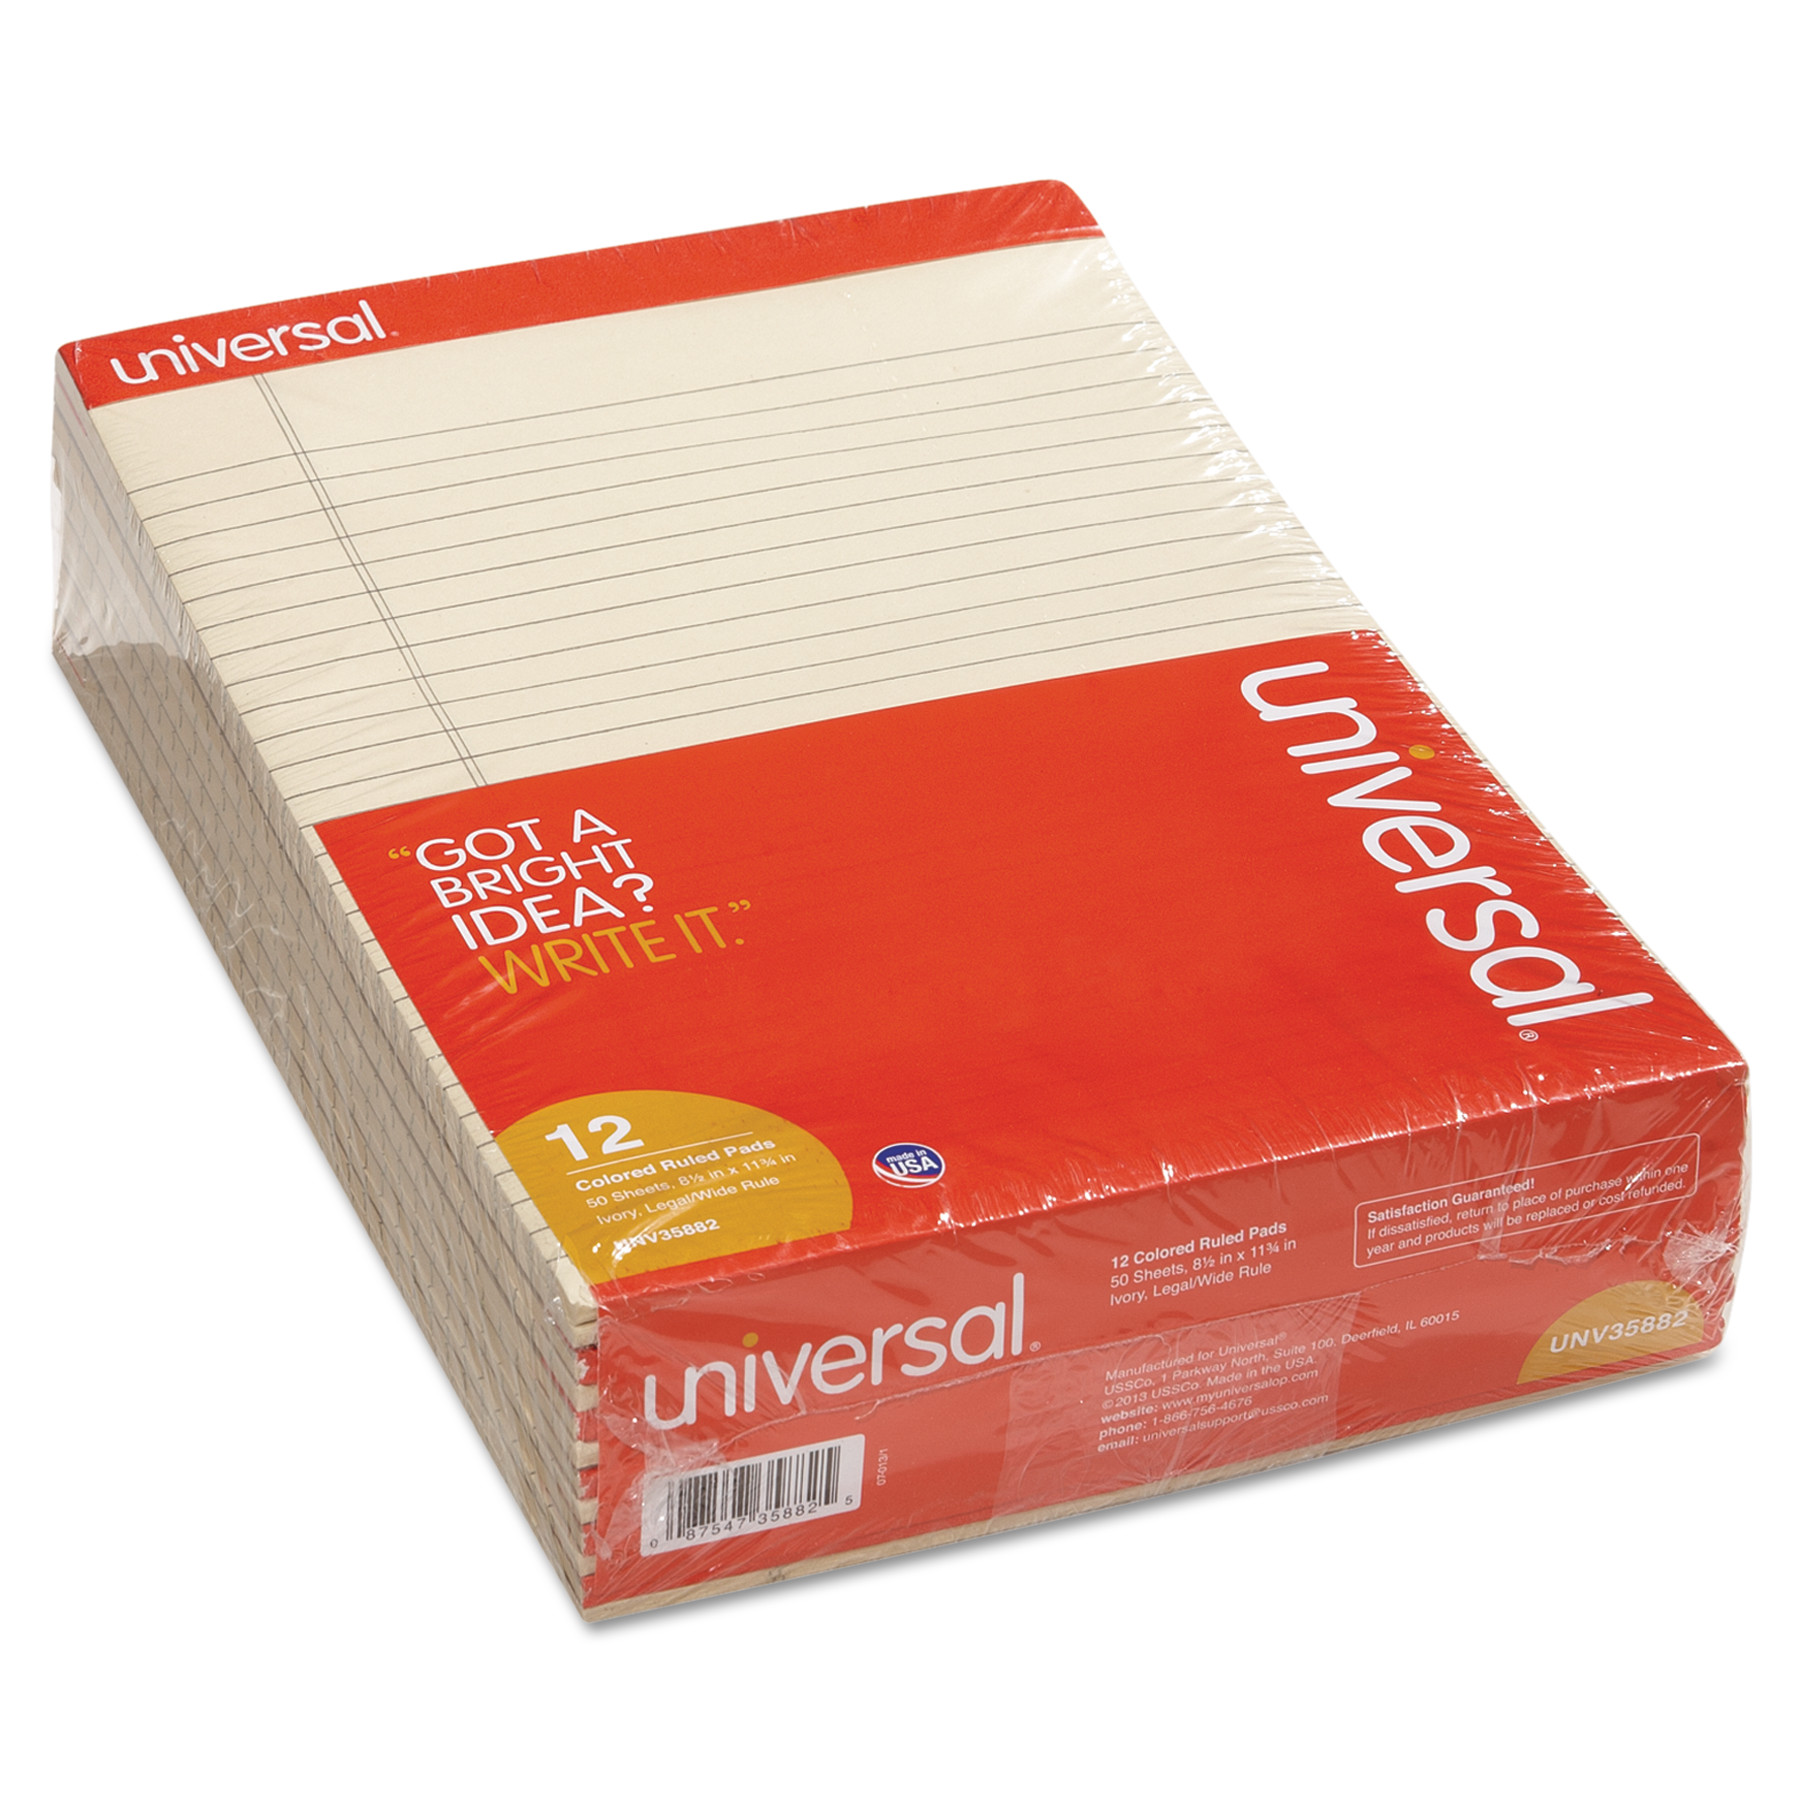 Universal Colored Perforated Ruled Writing Pad, Legal, 8 1/2 x 11 3/4, Ivory, 50 Sheets,DZ -UNV35882